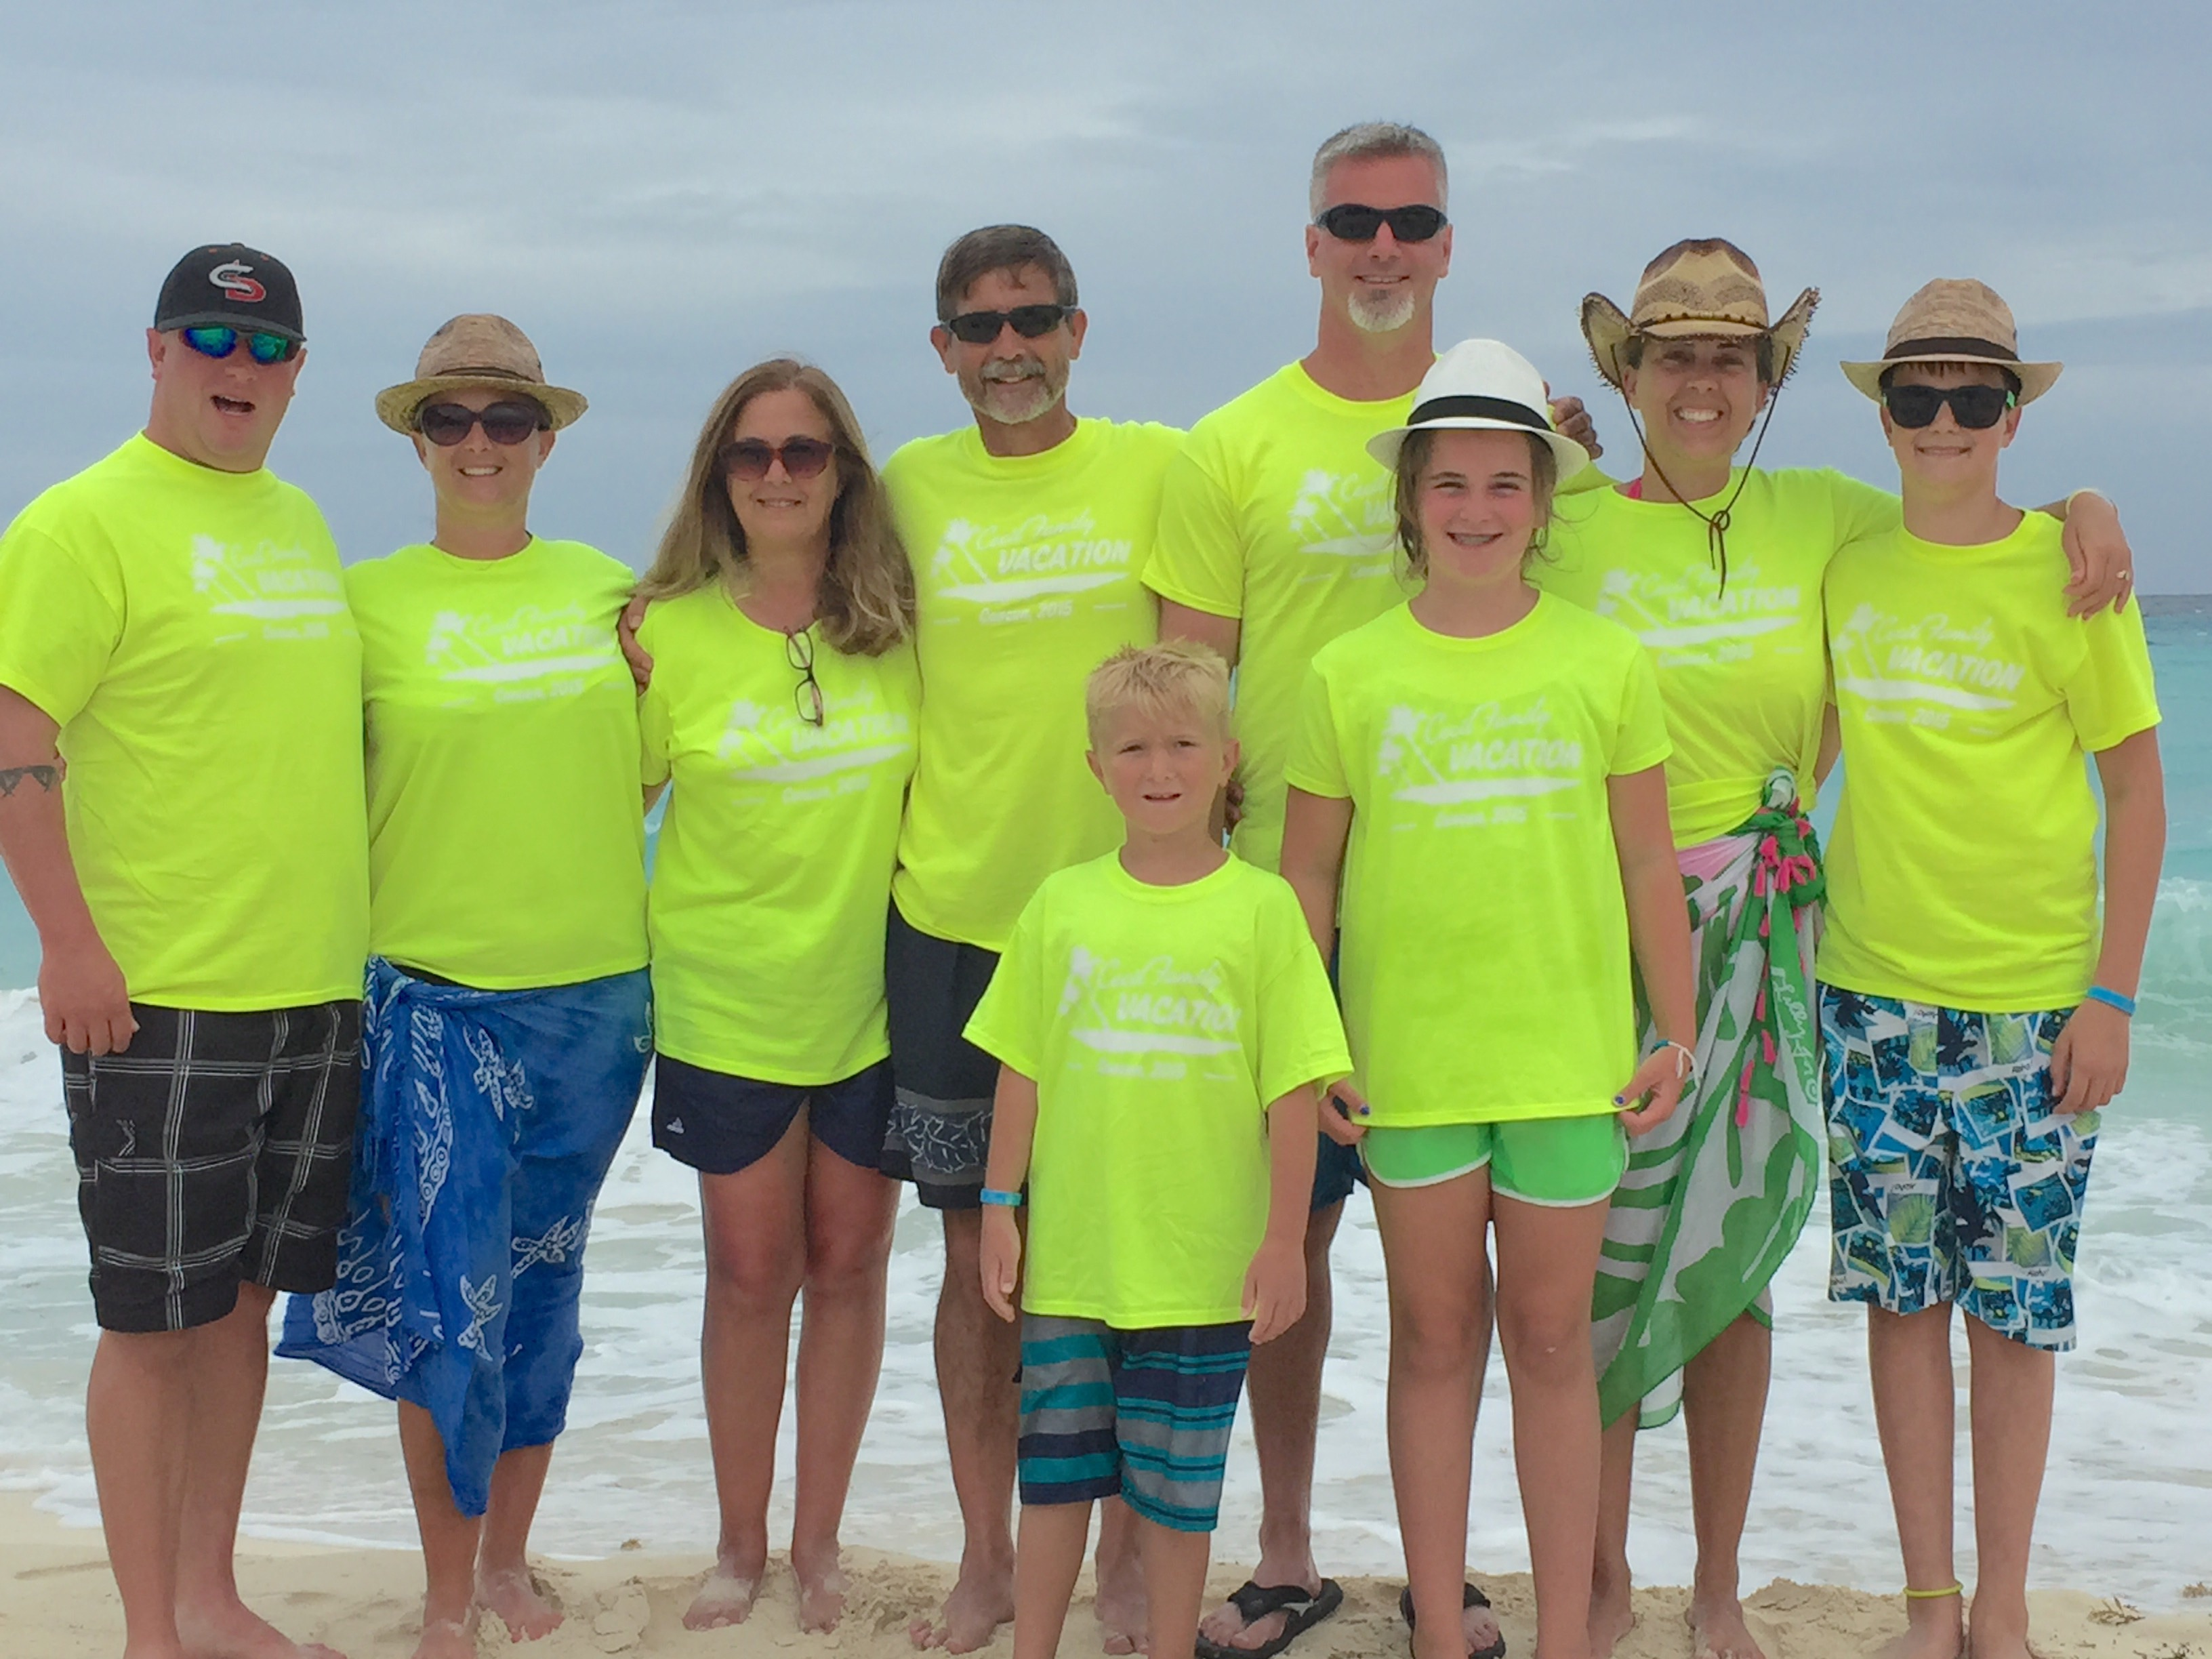 Custom t shirts for cancun family vacation shirt design for Custom t shirts family vacation